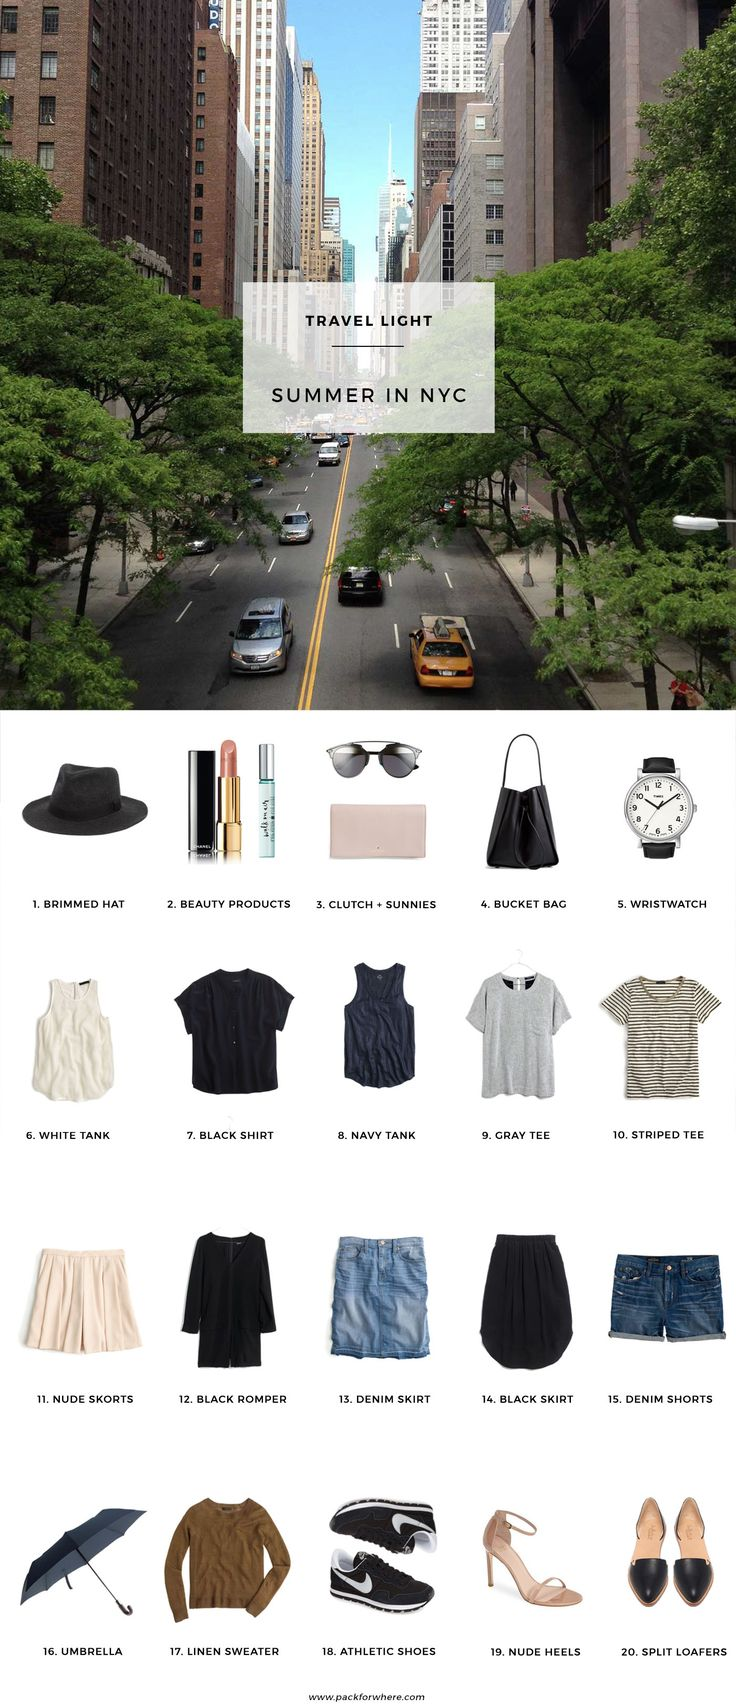 Pack for Summer in NYC, includes shoppable packing list and outfits. Fits in a carry-on!